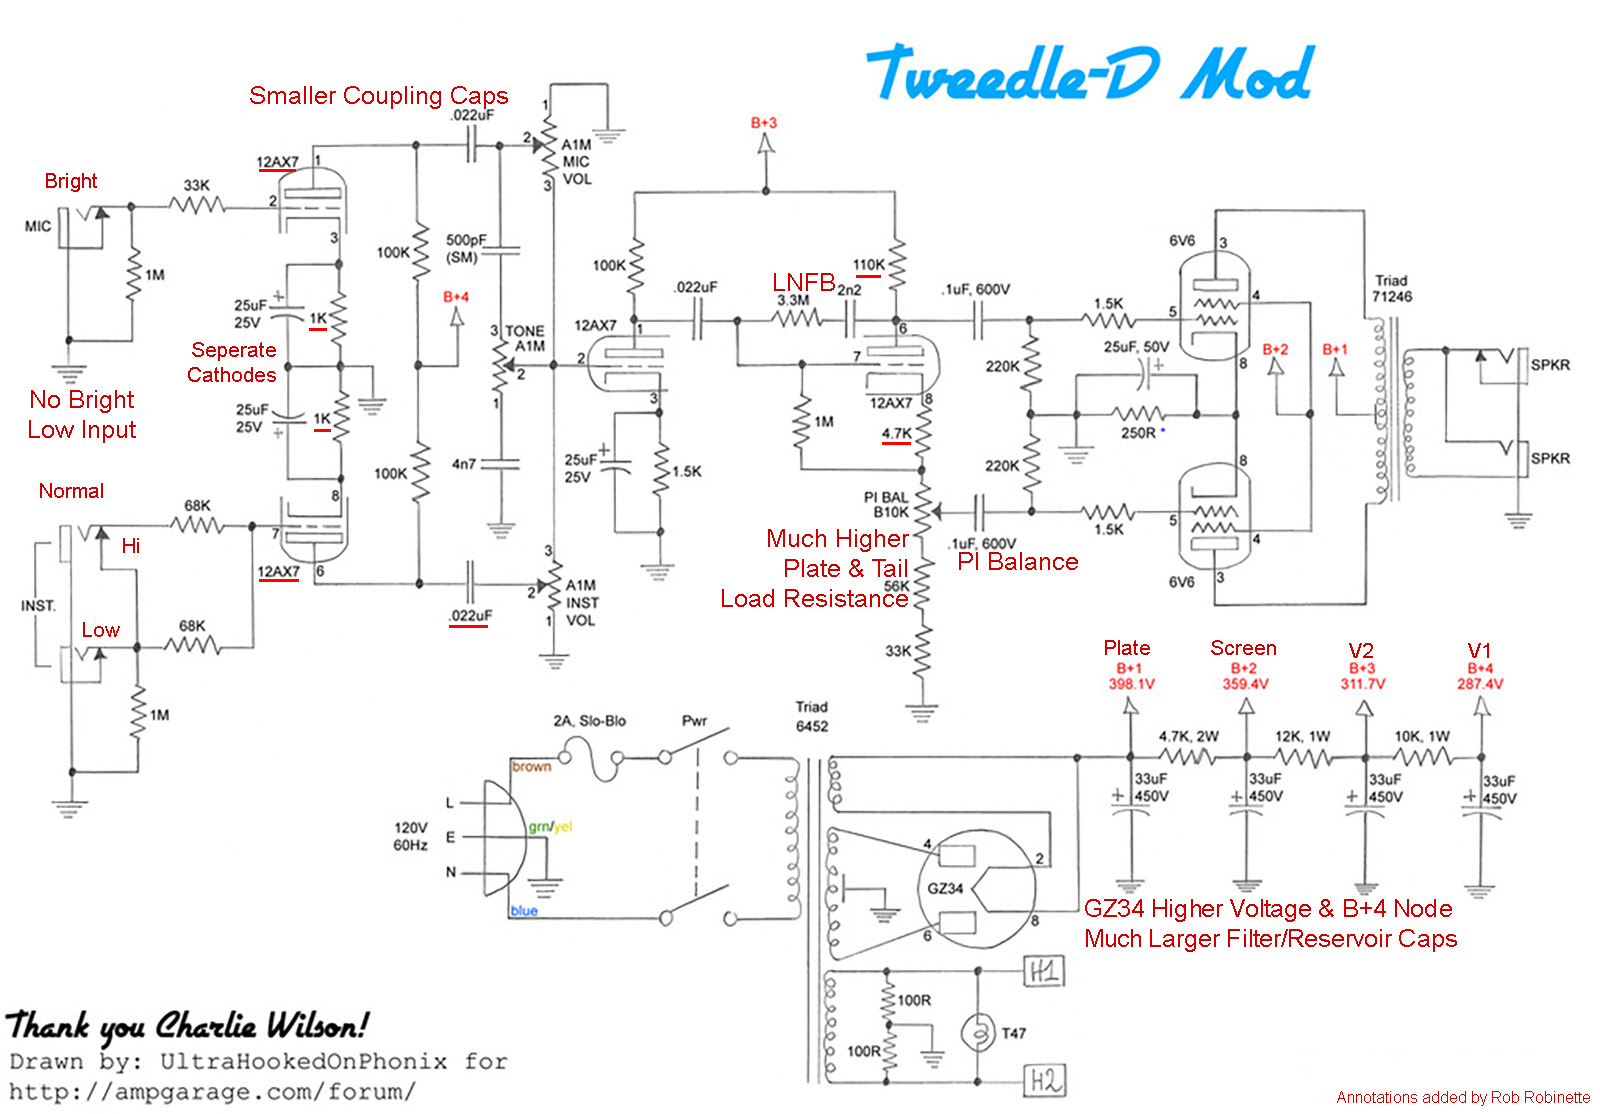 Amp Voicing Ac Potentiometer Wiring I Have Highlighted The Differences Between Tweedle Dee And A Standard Fender 5e3 Deluxe With Red Text Phase Inverter Balance Pot Pi Bal 10k Linear